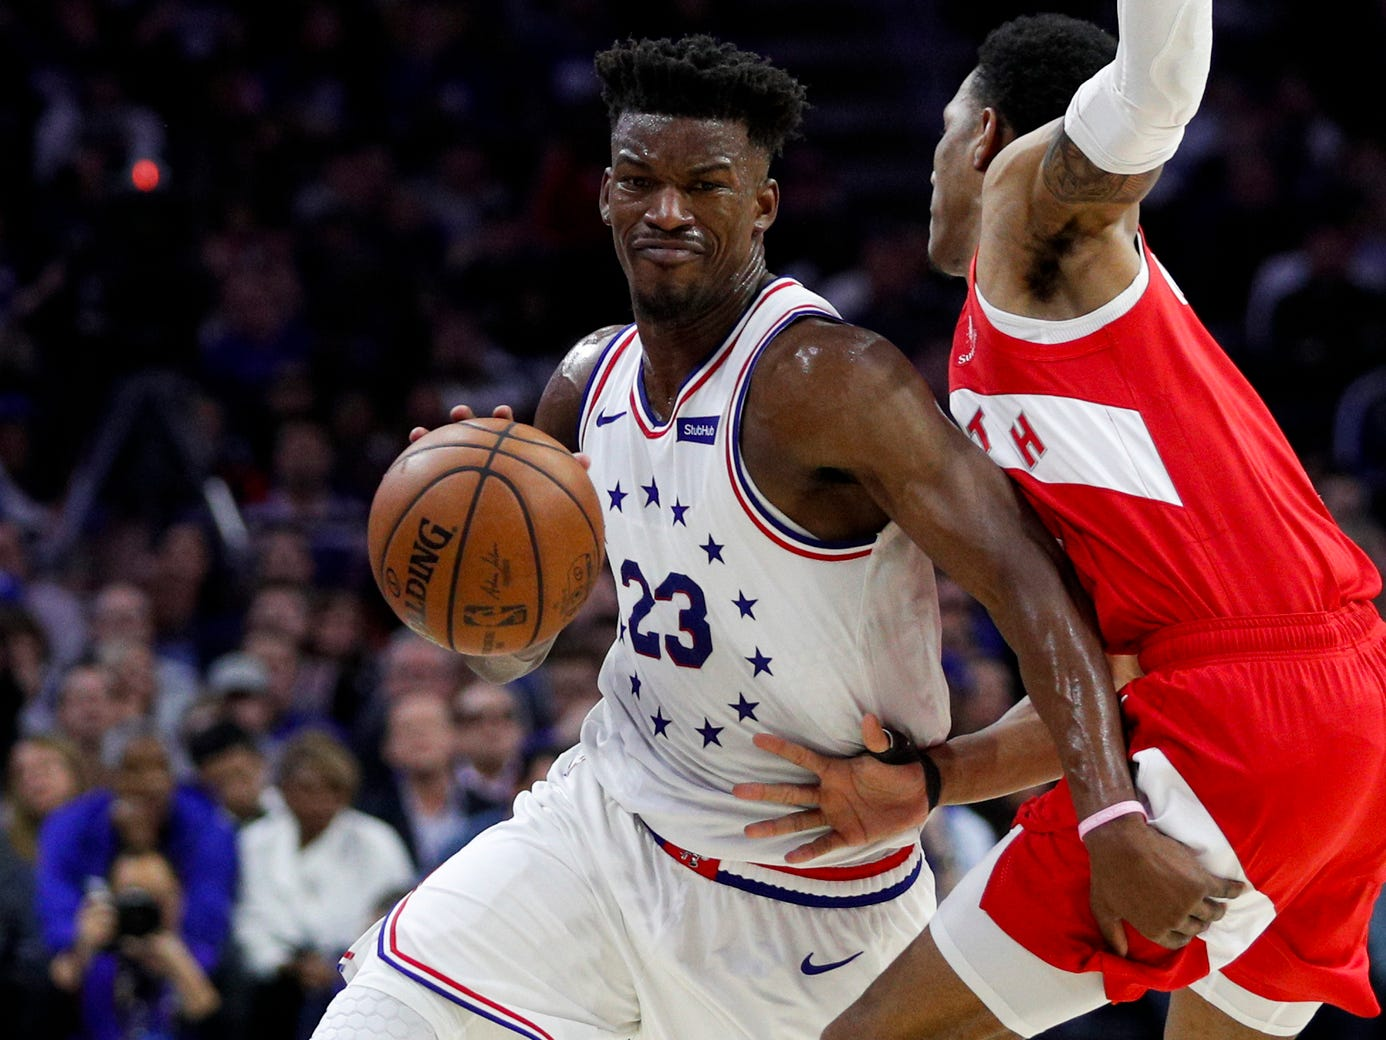 Opinion: Pushed by his intense desire to win, Jimmy Butler leads Sixers to Game 7